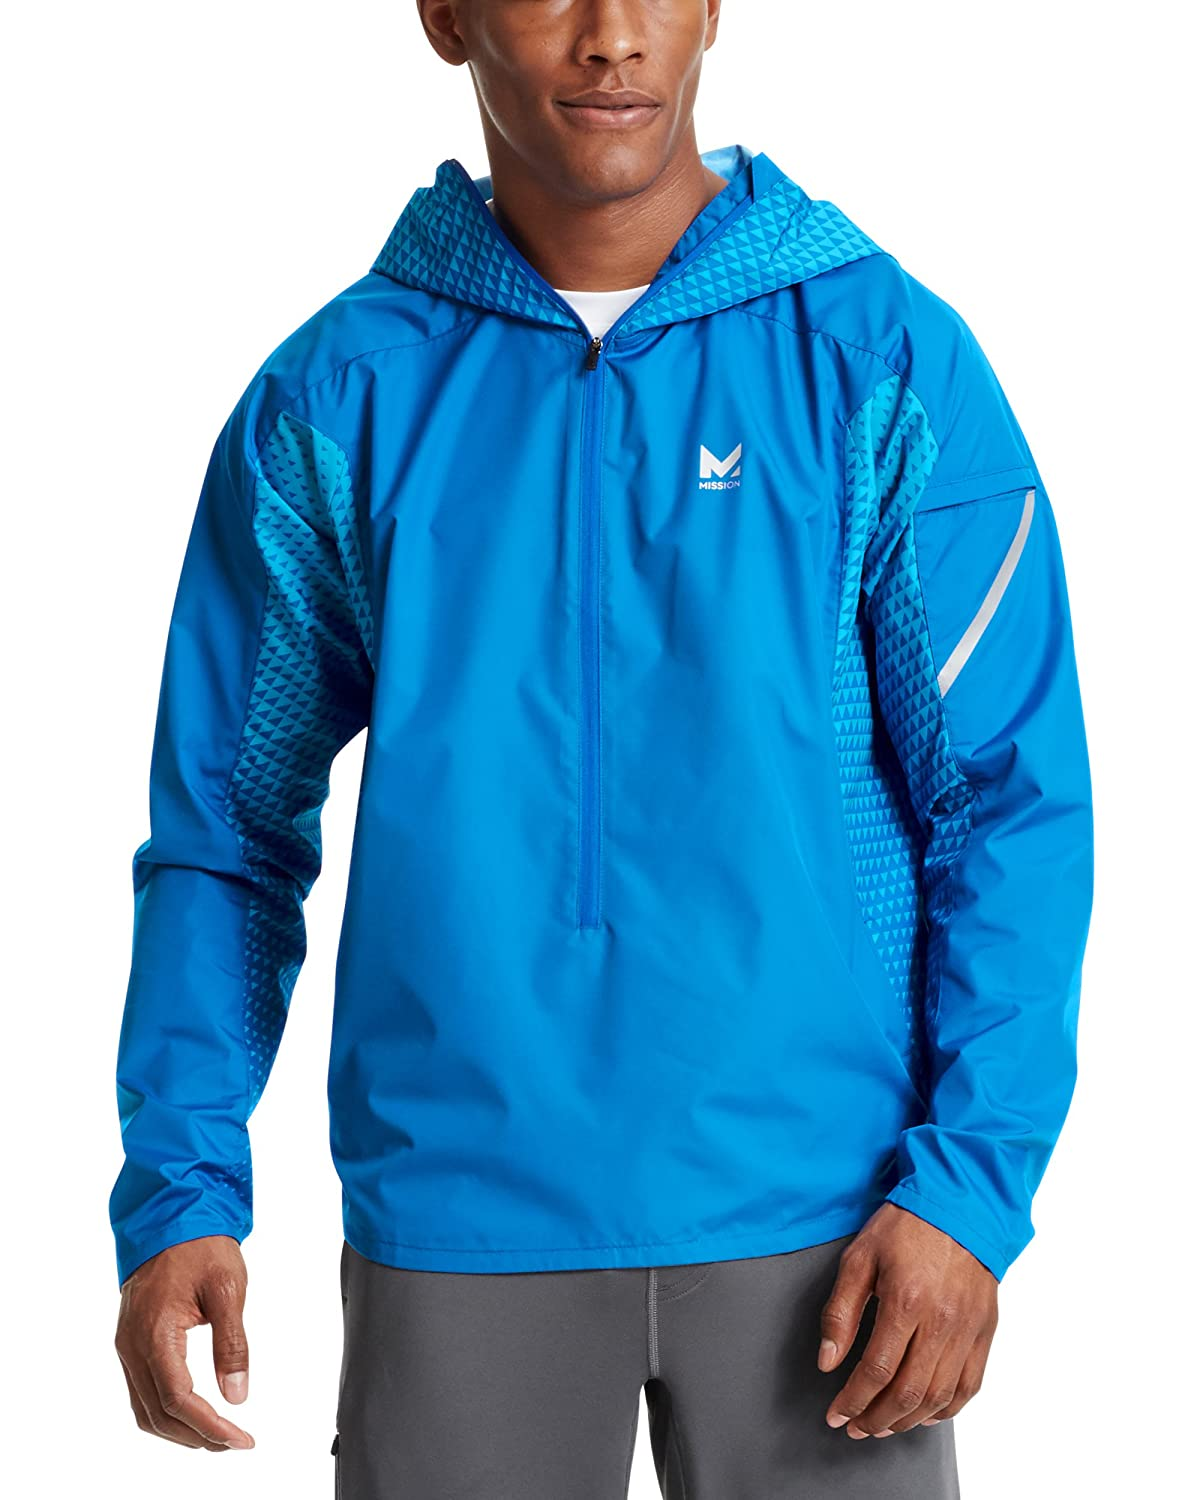 Mission Men's VaporActive Barometer Running Jacket